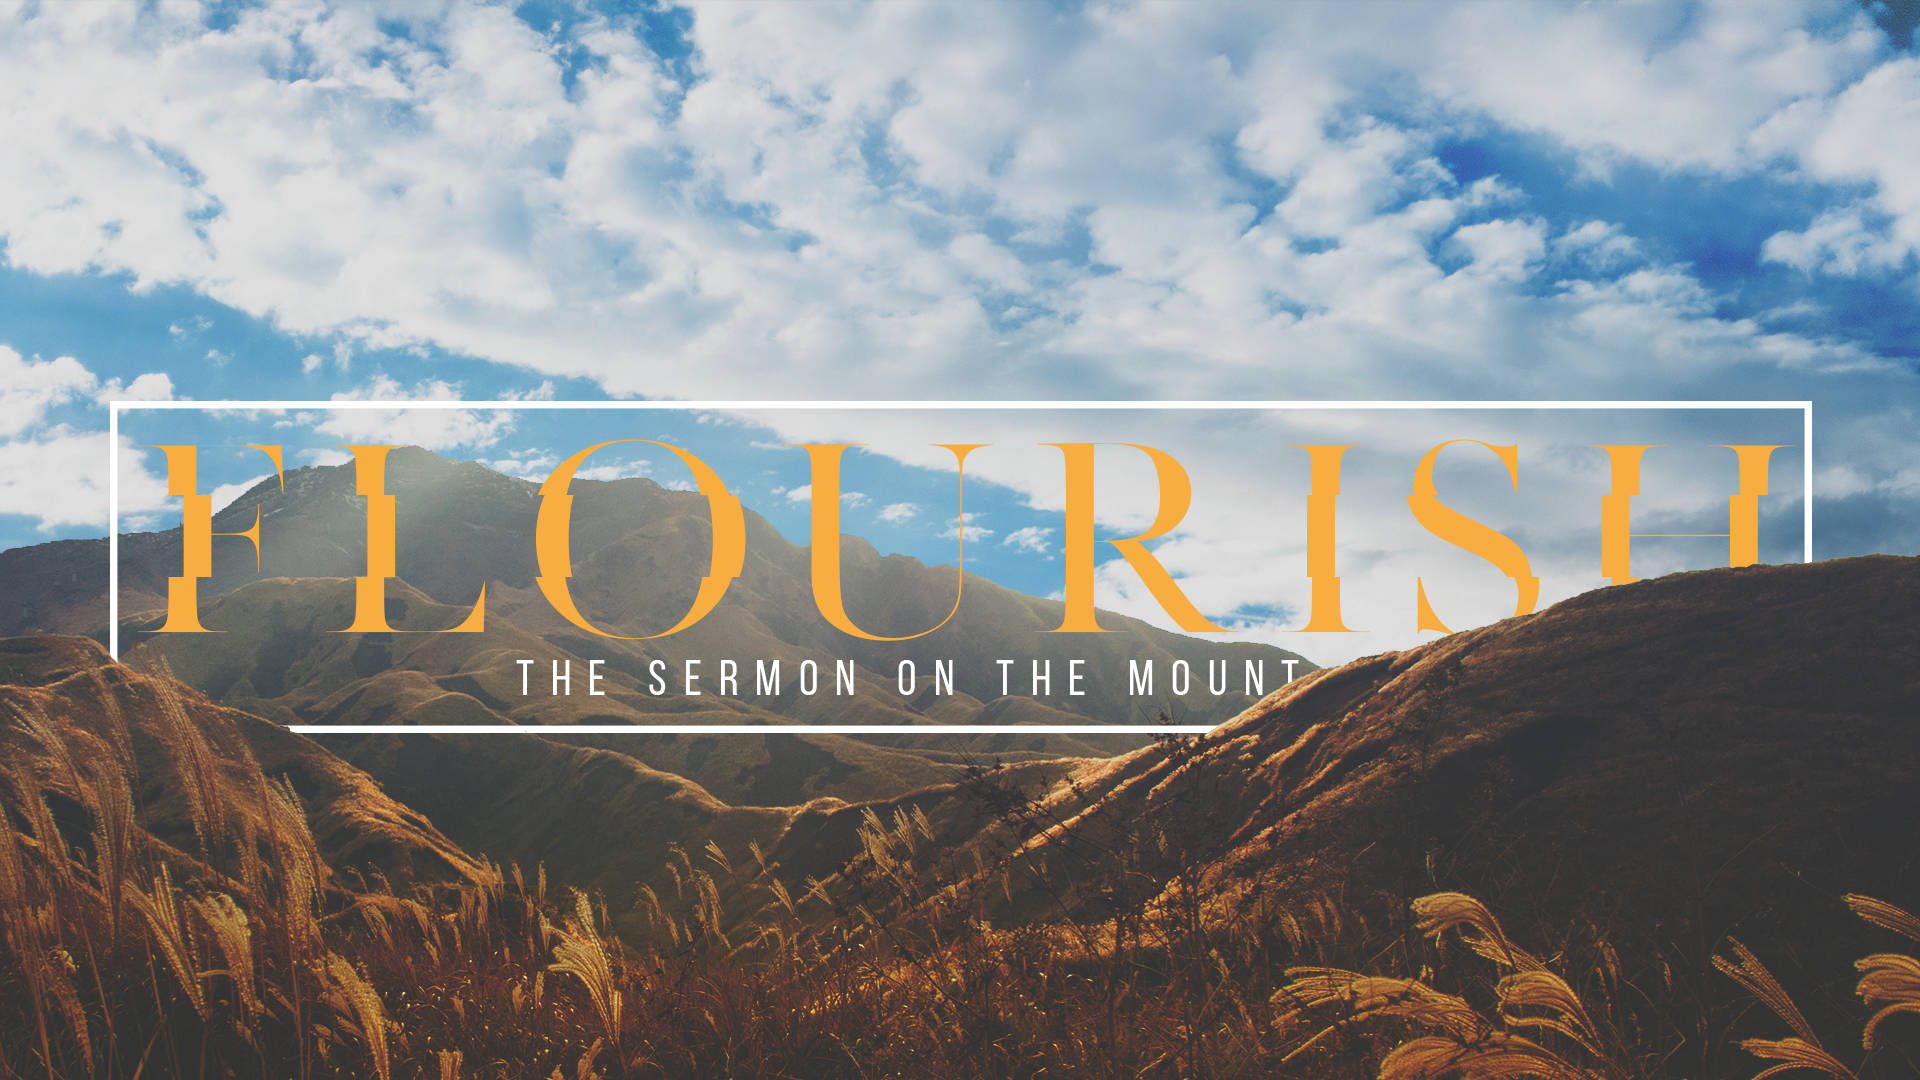 Flourish:  The Sermon on the Mount